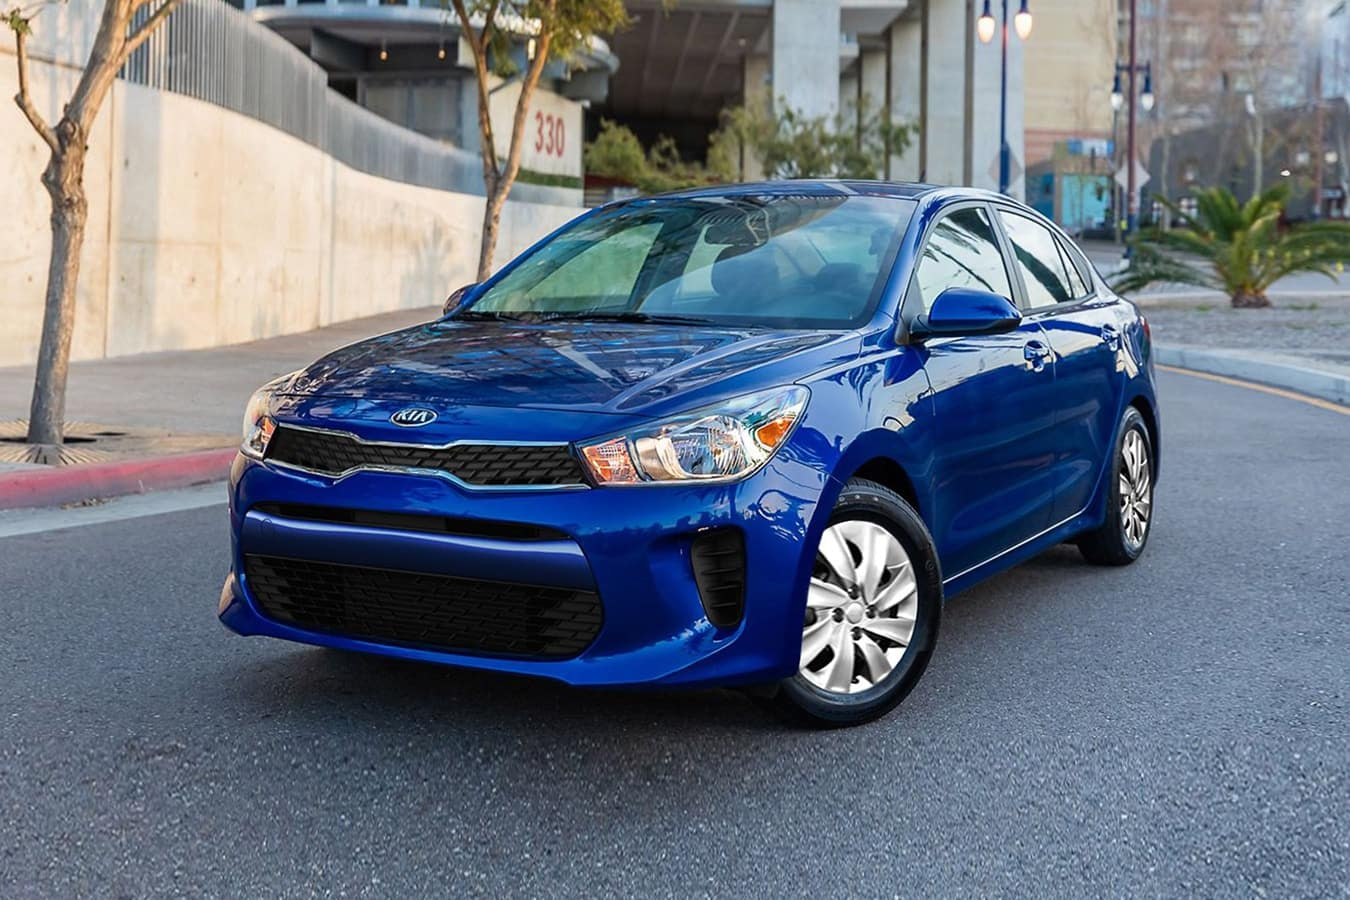 Buy, Lease, or Finance the 2020 Kia Rio near Auburn Hills MI